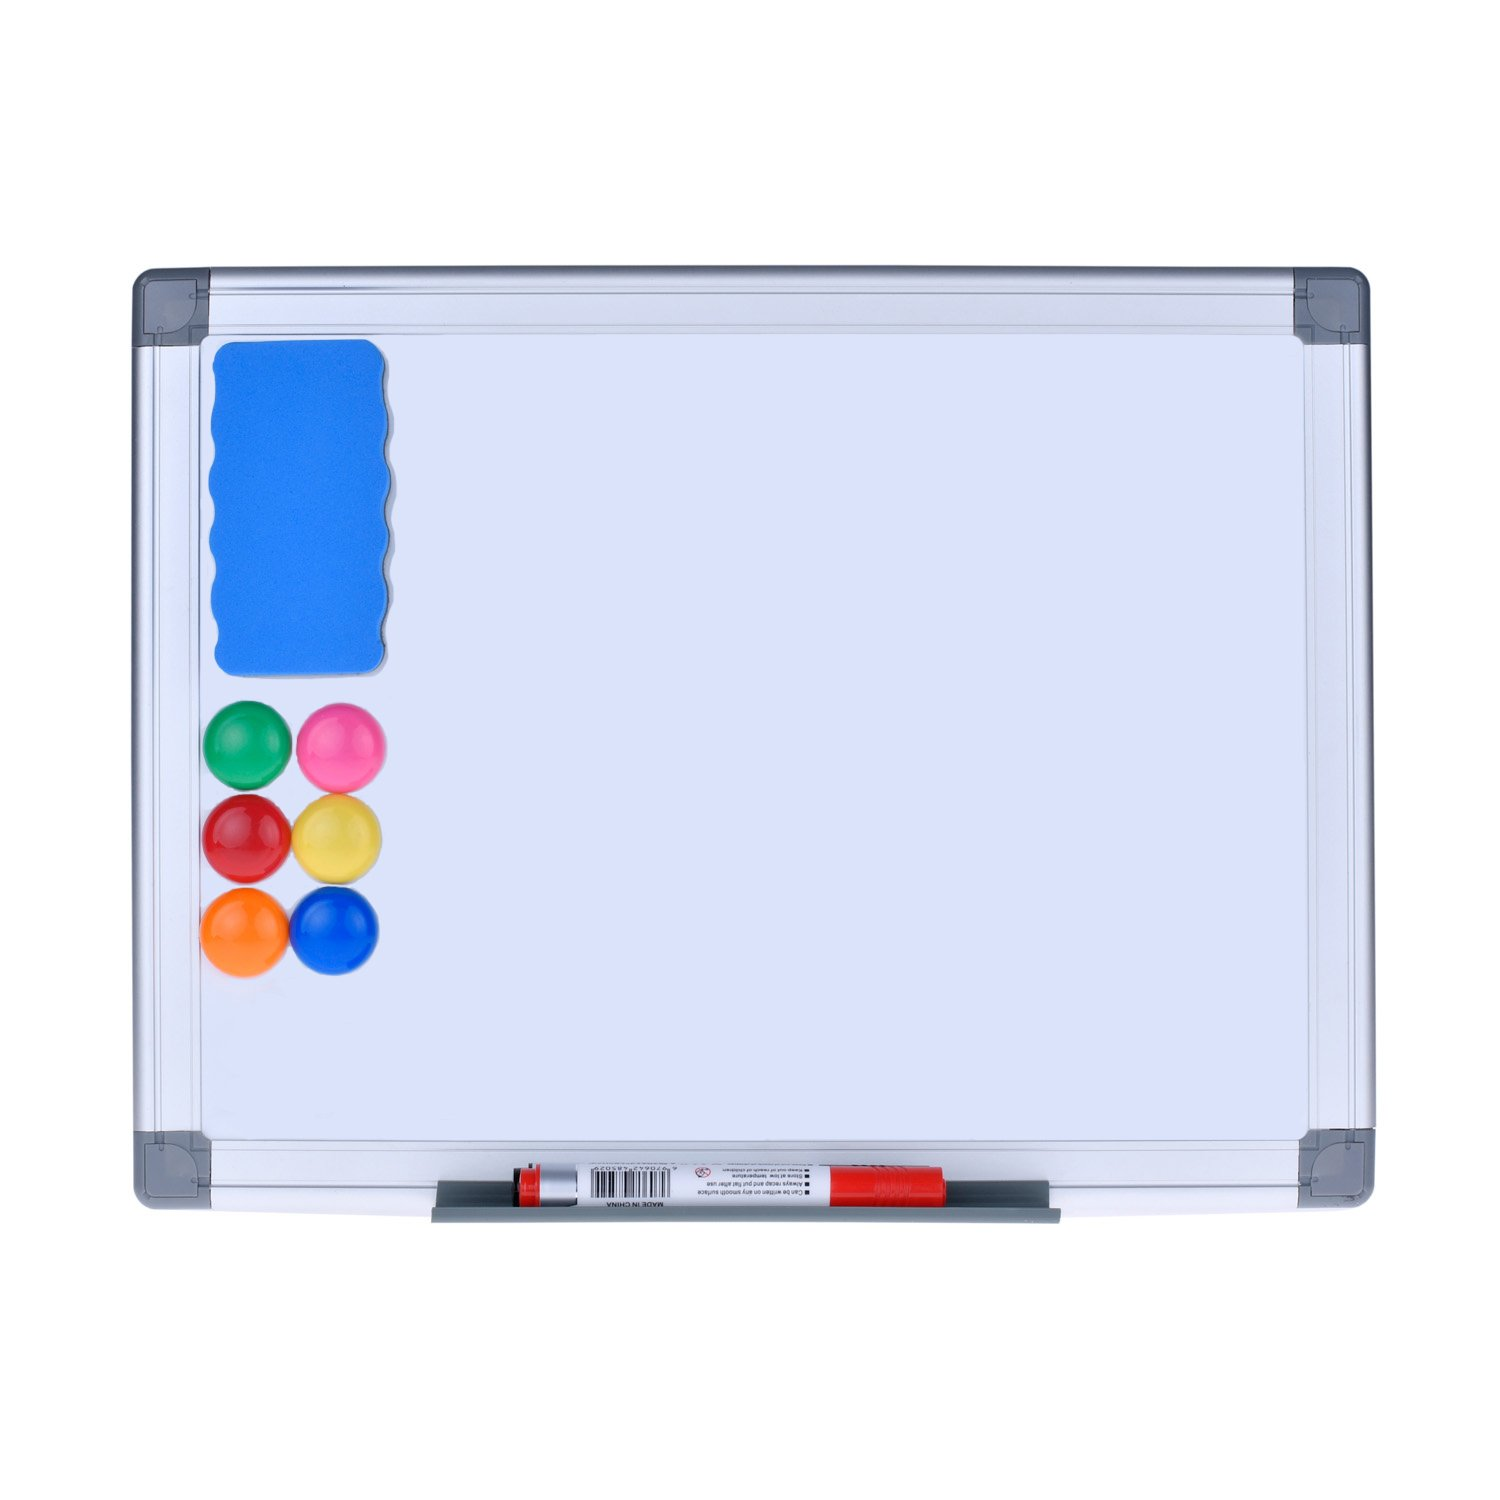 Magnetic Dry Erase Board - EFIRNITURE 12x15 inch Aluminum Frame Wall Mounted Whiteboard, 6 Magnets, 2 Marker Pens, 1 Eraser, and Removable Marker Tray Included